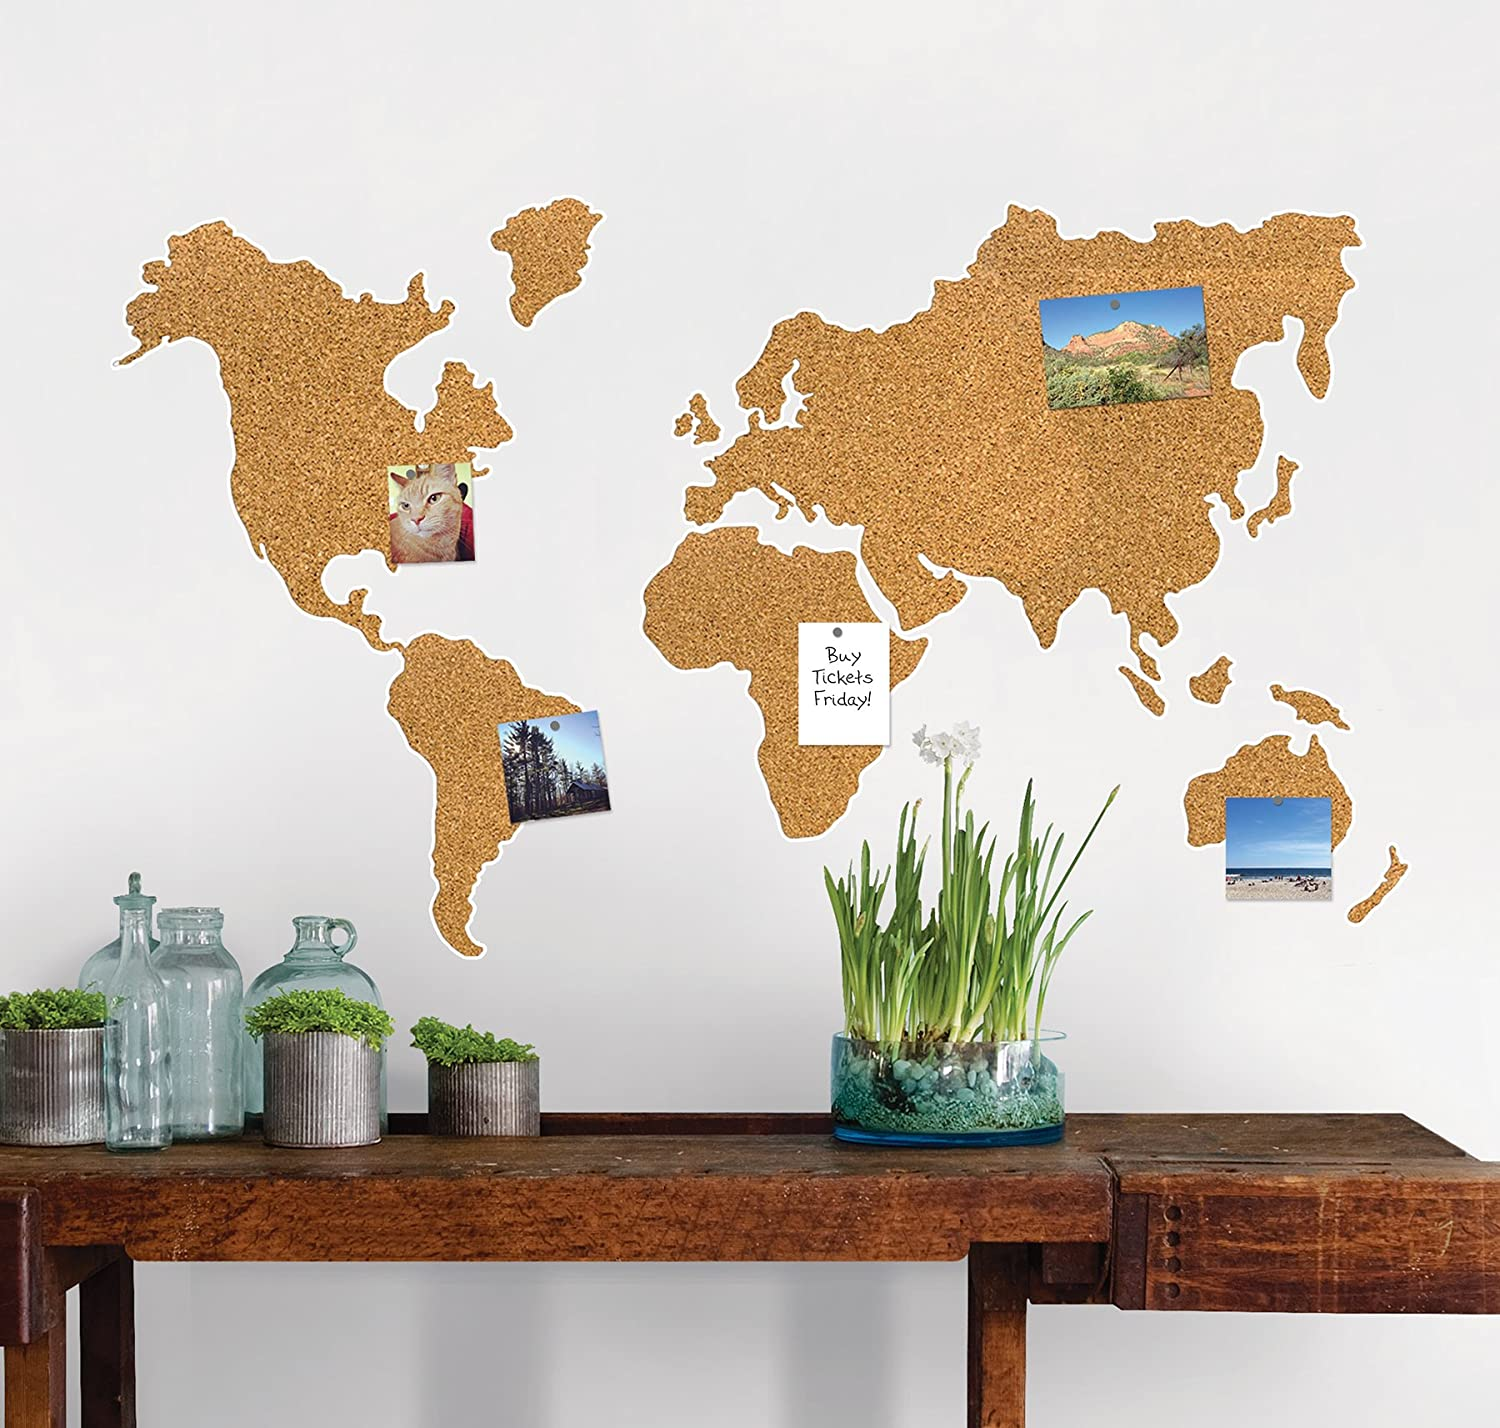 Wall pops wpe1941 cork map pinboard tan amazon gumiabroncs Images